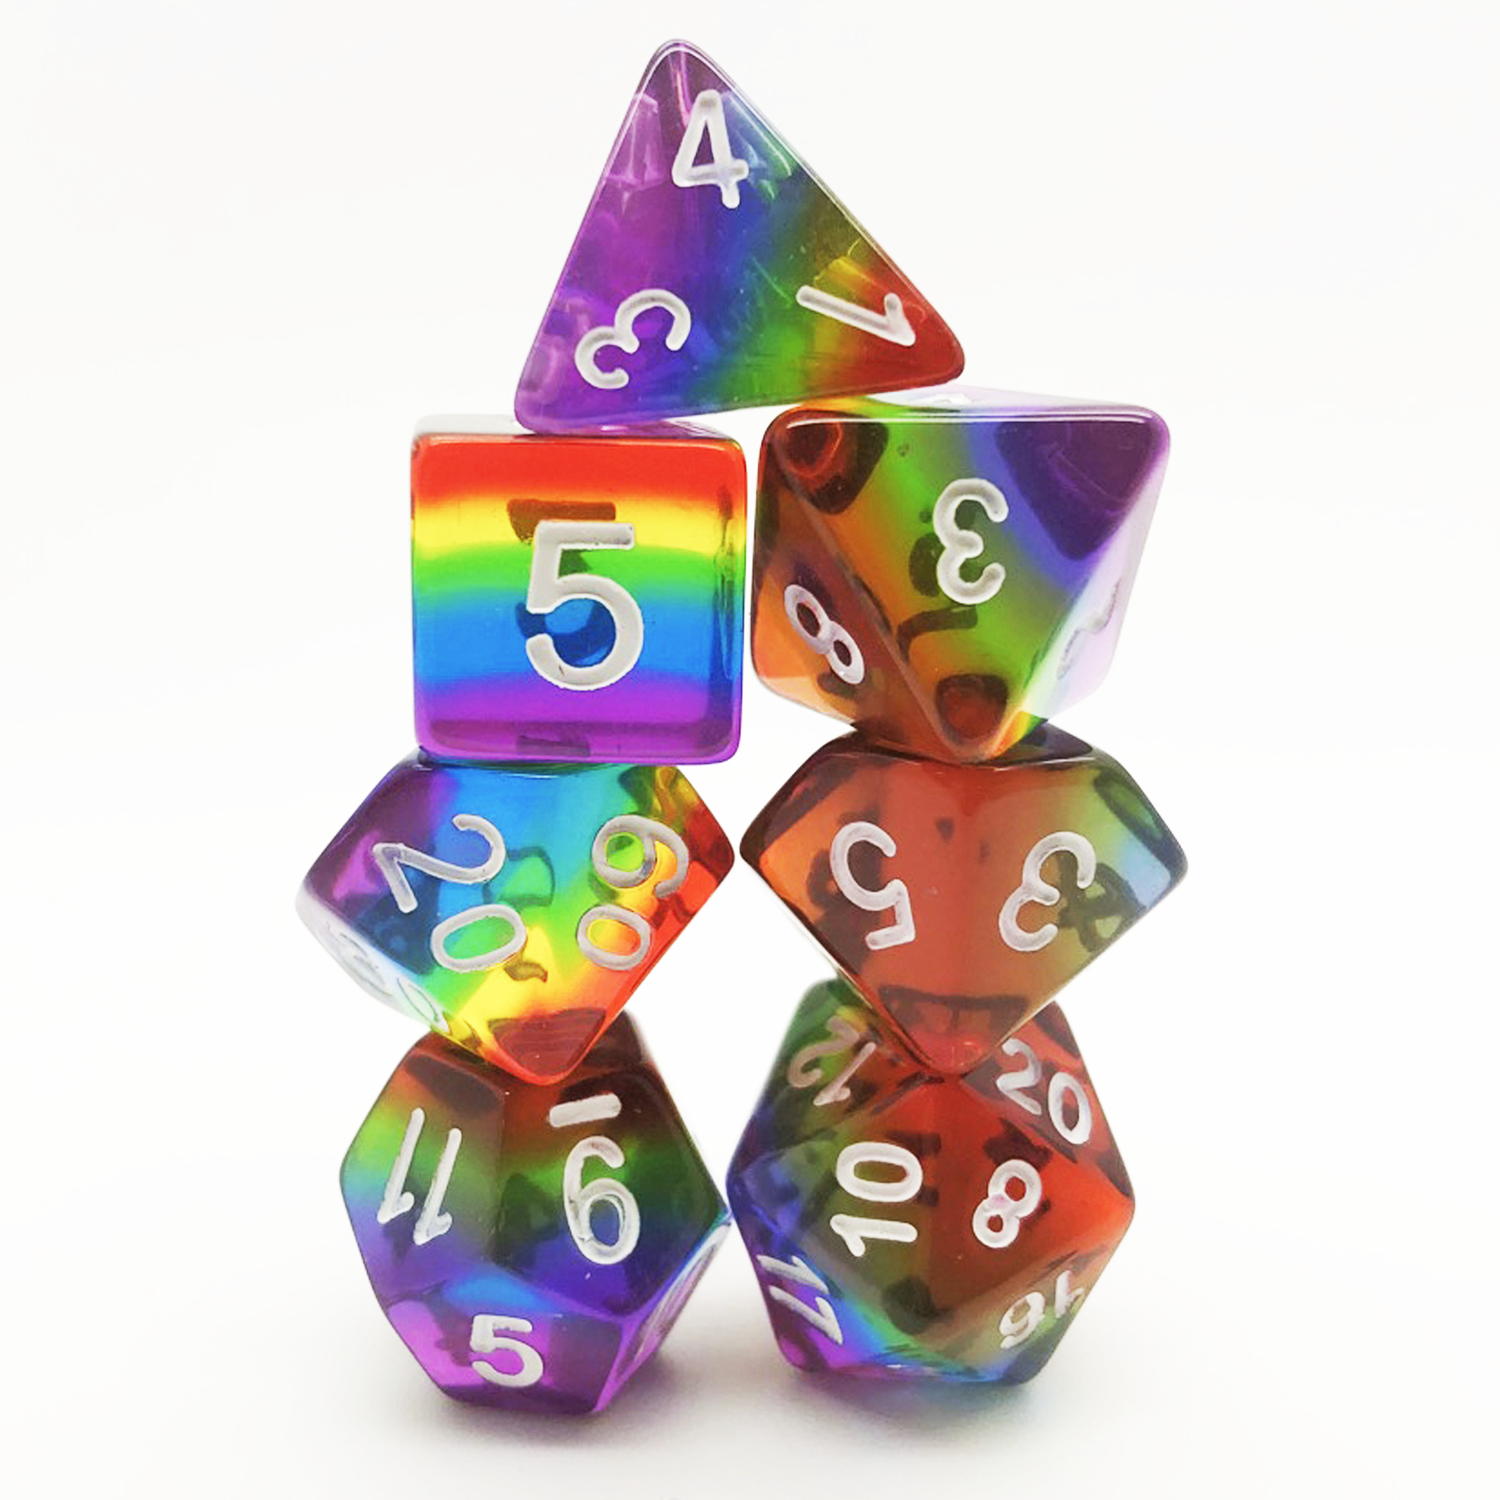 Translucent Rainbow - Hedronix-DnD-Dice-Dungeons and Dragons-D20 Collective